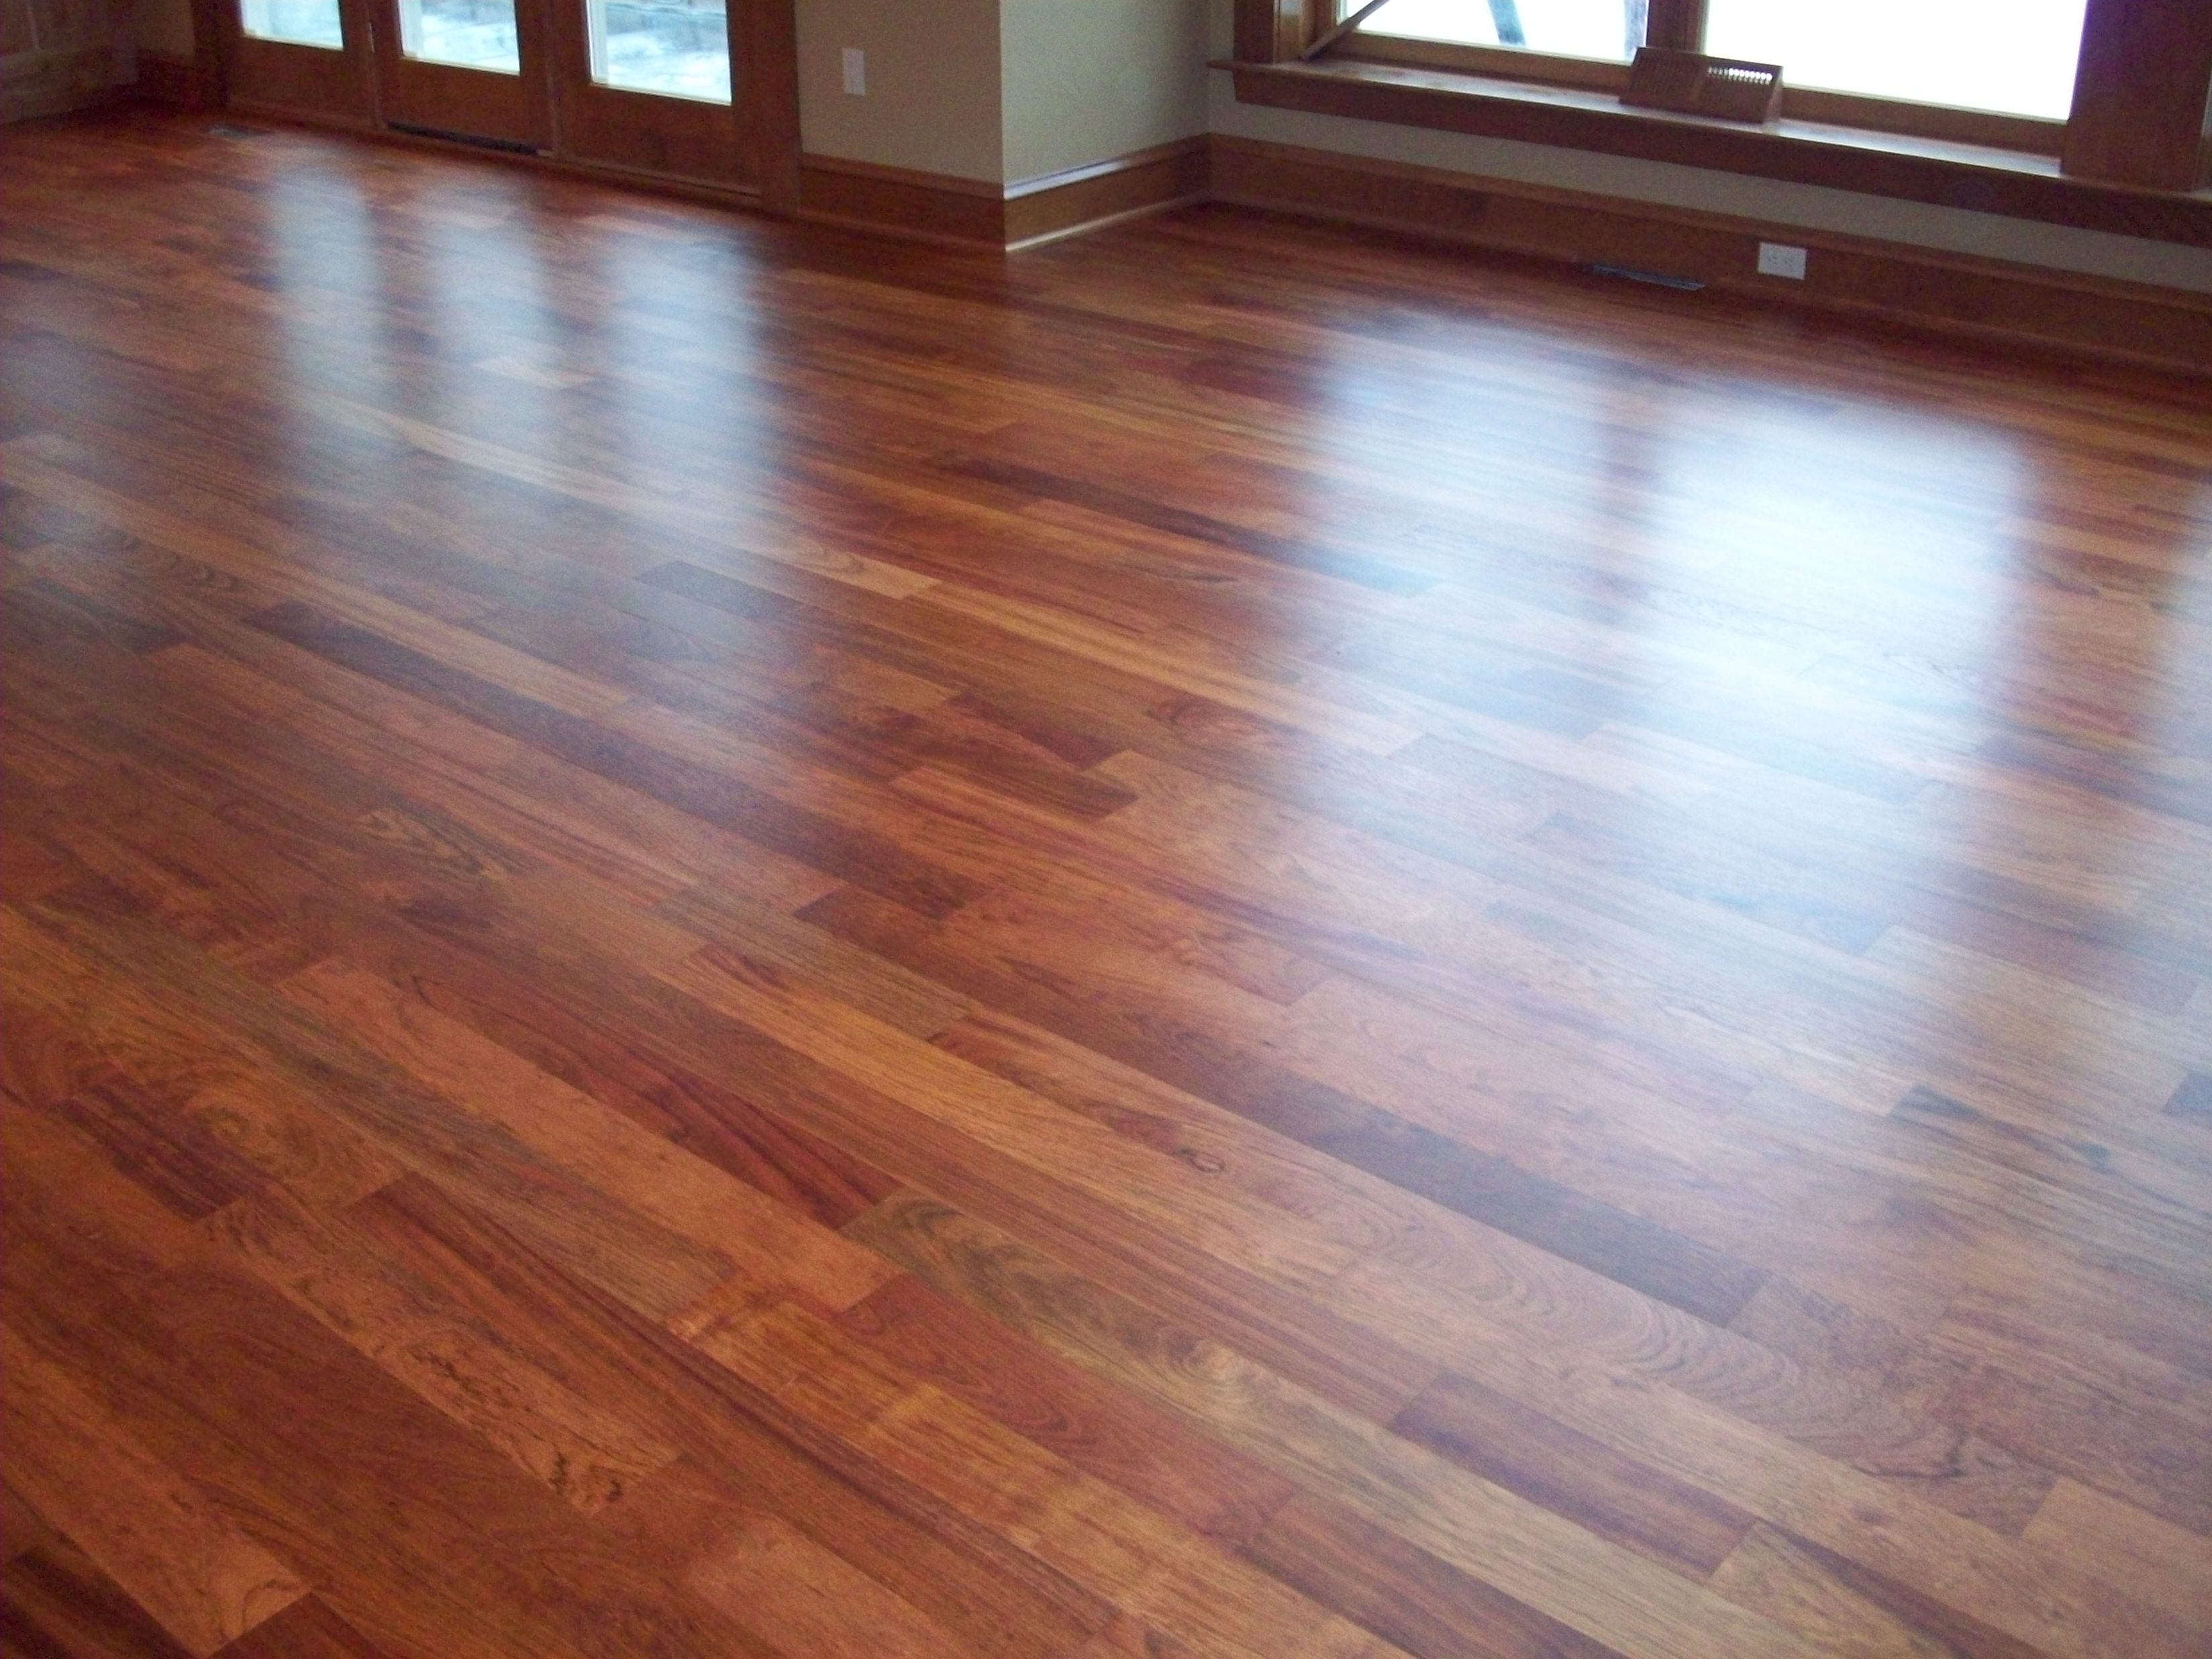 How to care for hardwood floorspeaches 39 n clean for At floor or on floor